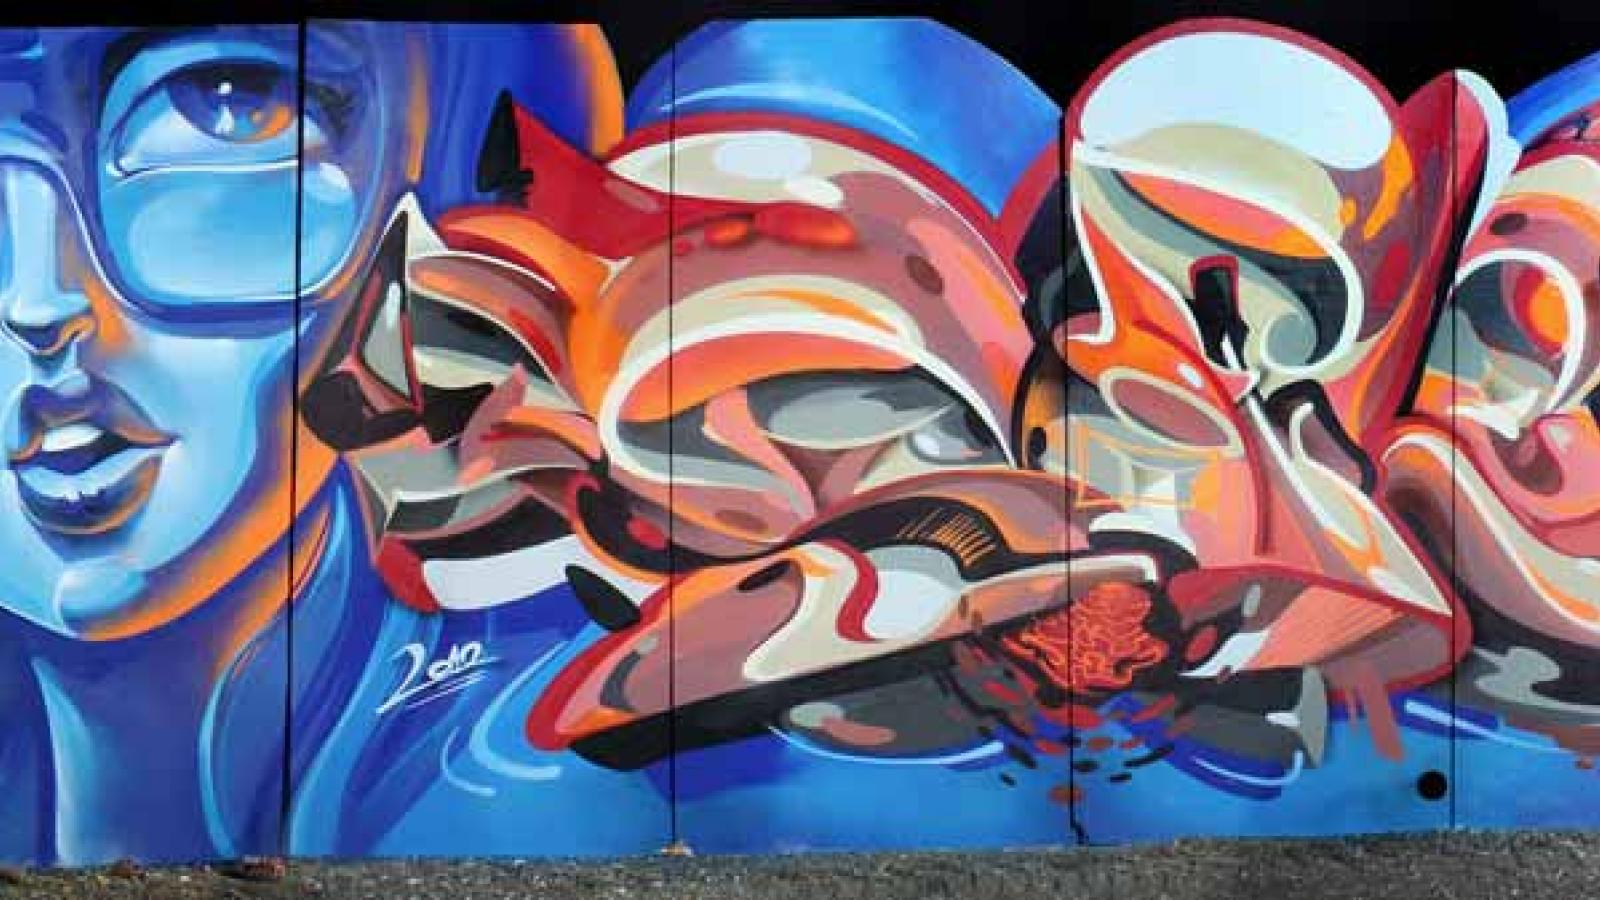 Extraordinary Graffiti by Sofles DTS